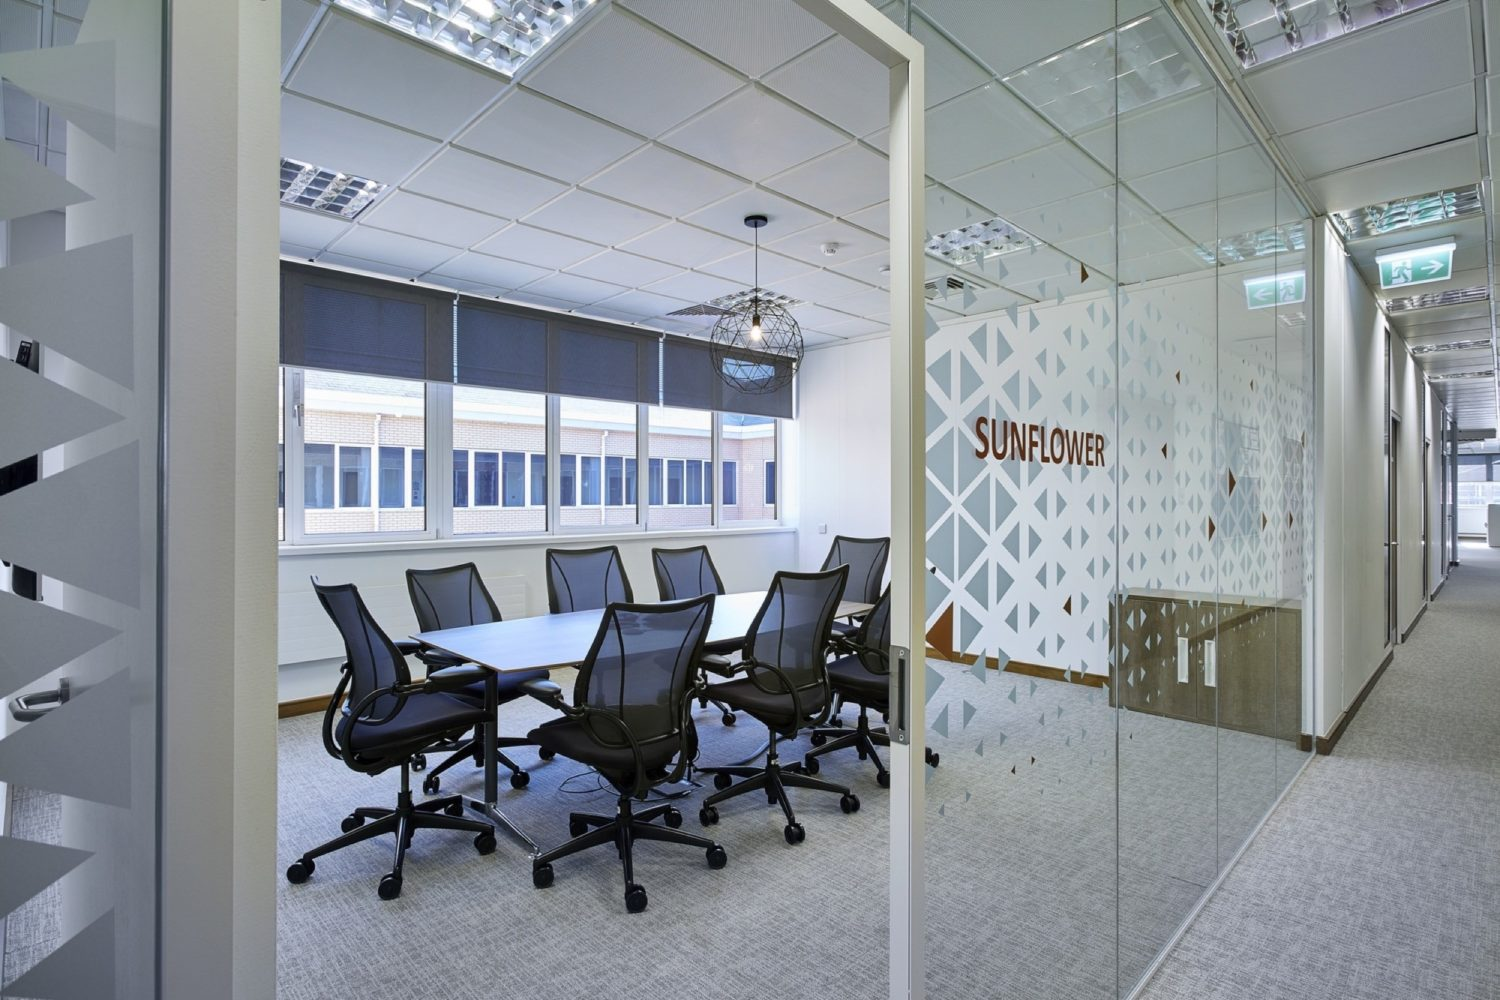 IHG smart meeting room fit out